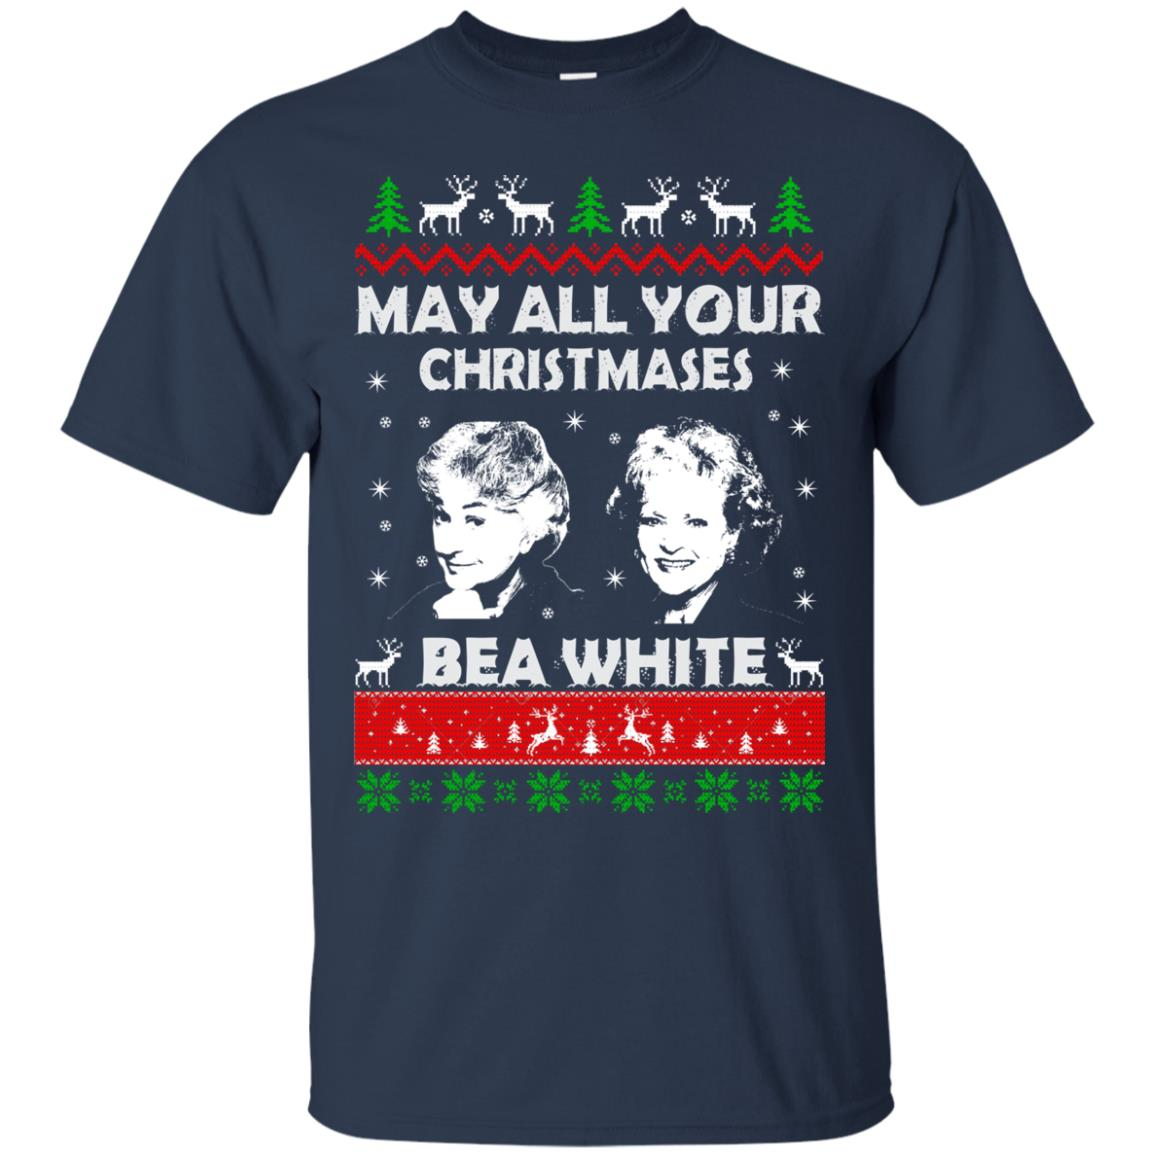 image 724 - May all your Christmases Bea White Ugly Sweater, Hoodie